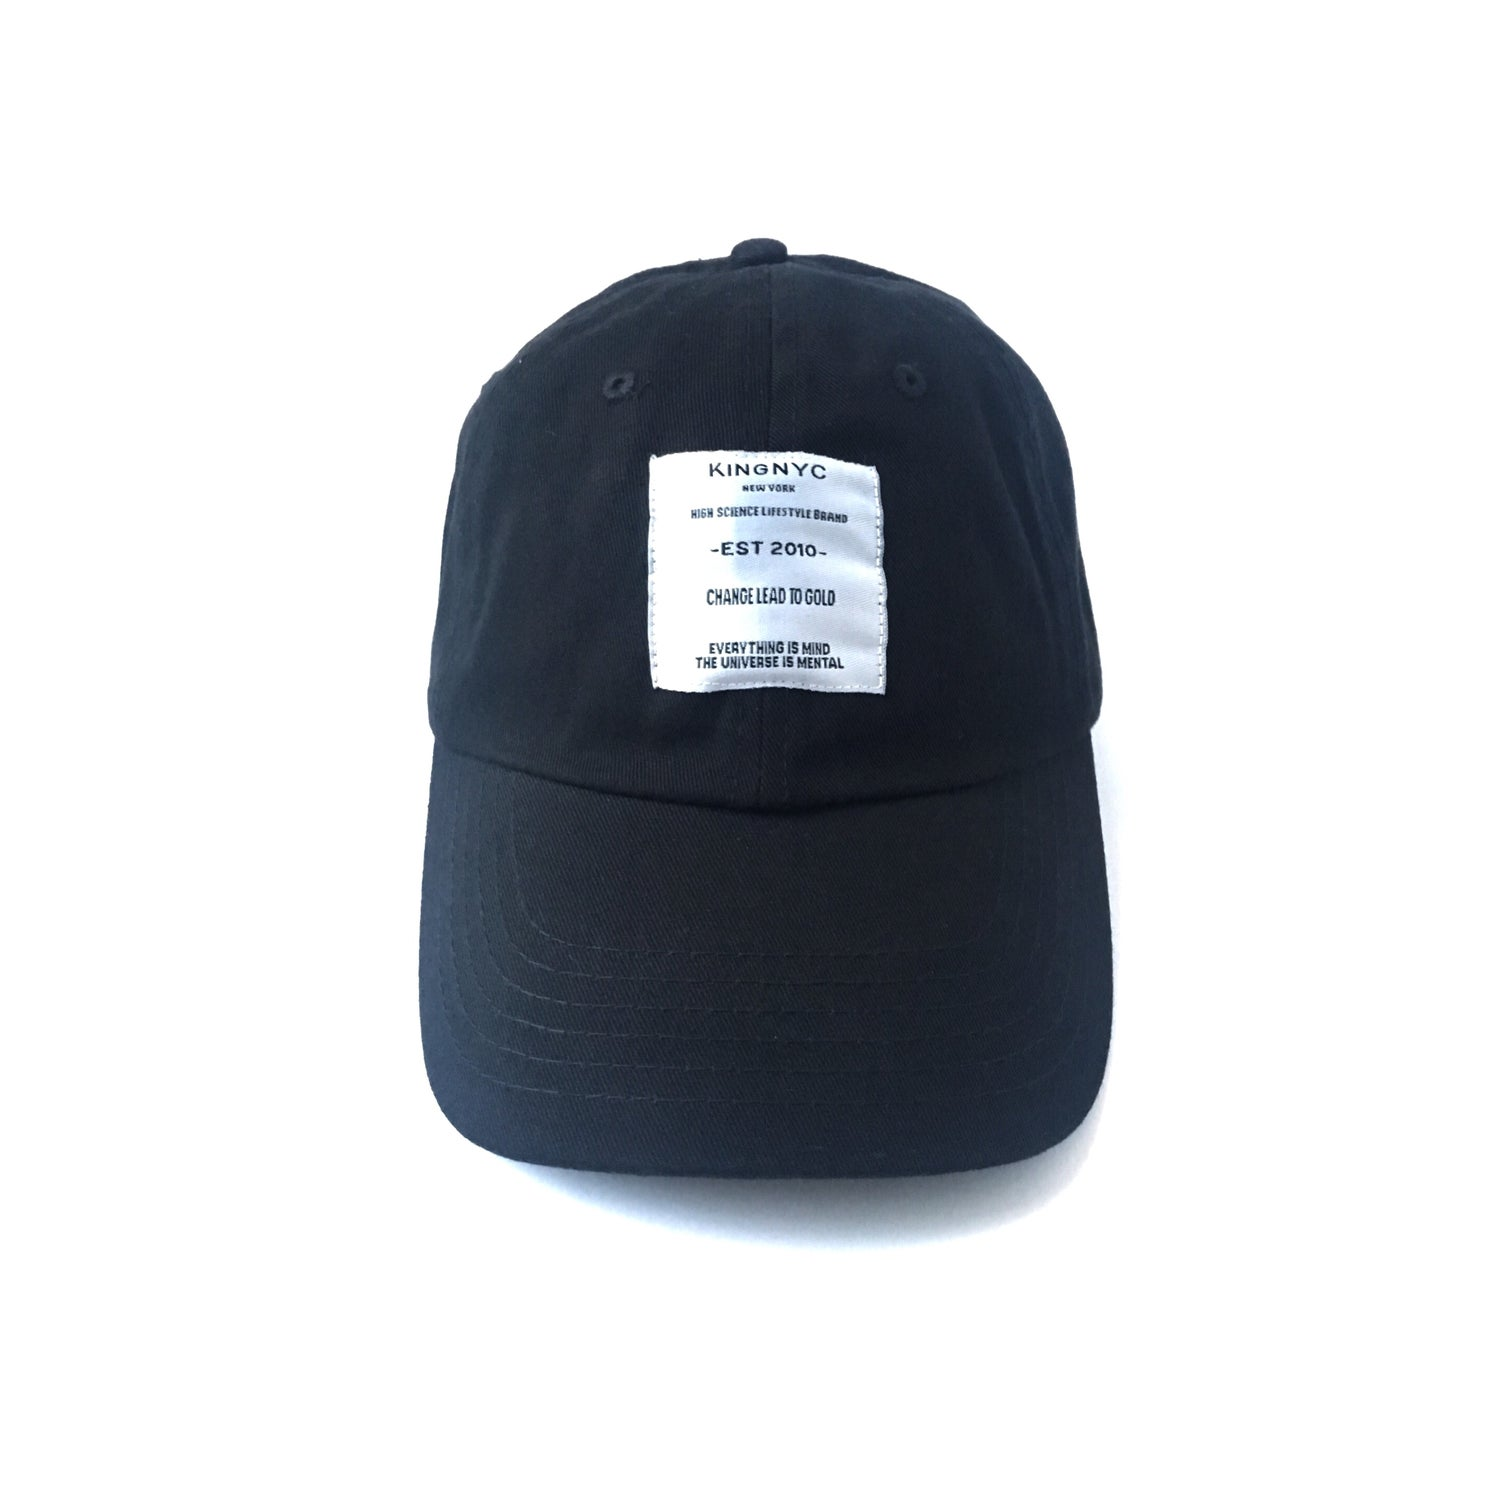 Image of KingNYC Lead II GOLD White Label Dad Hat